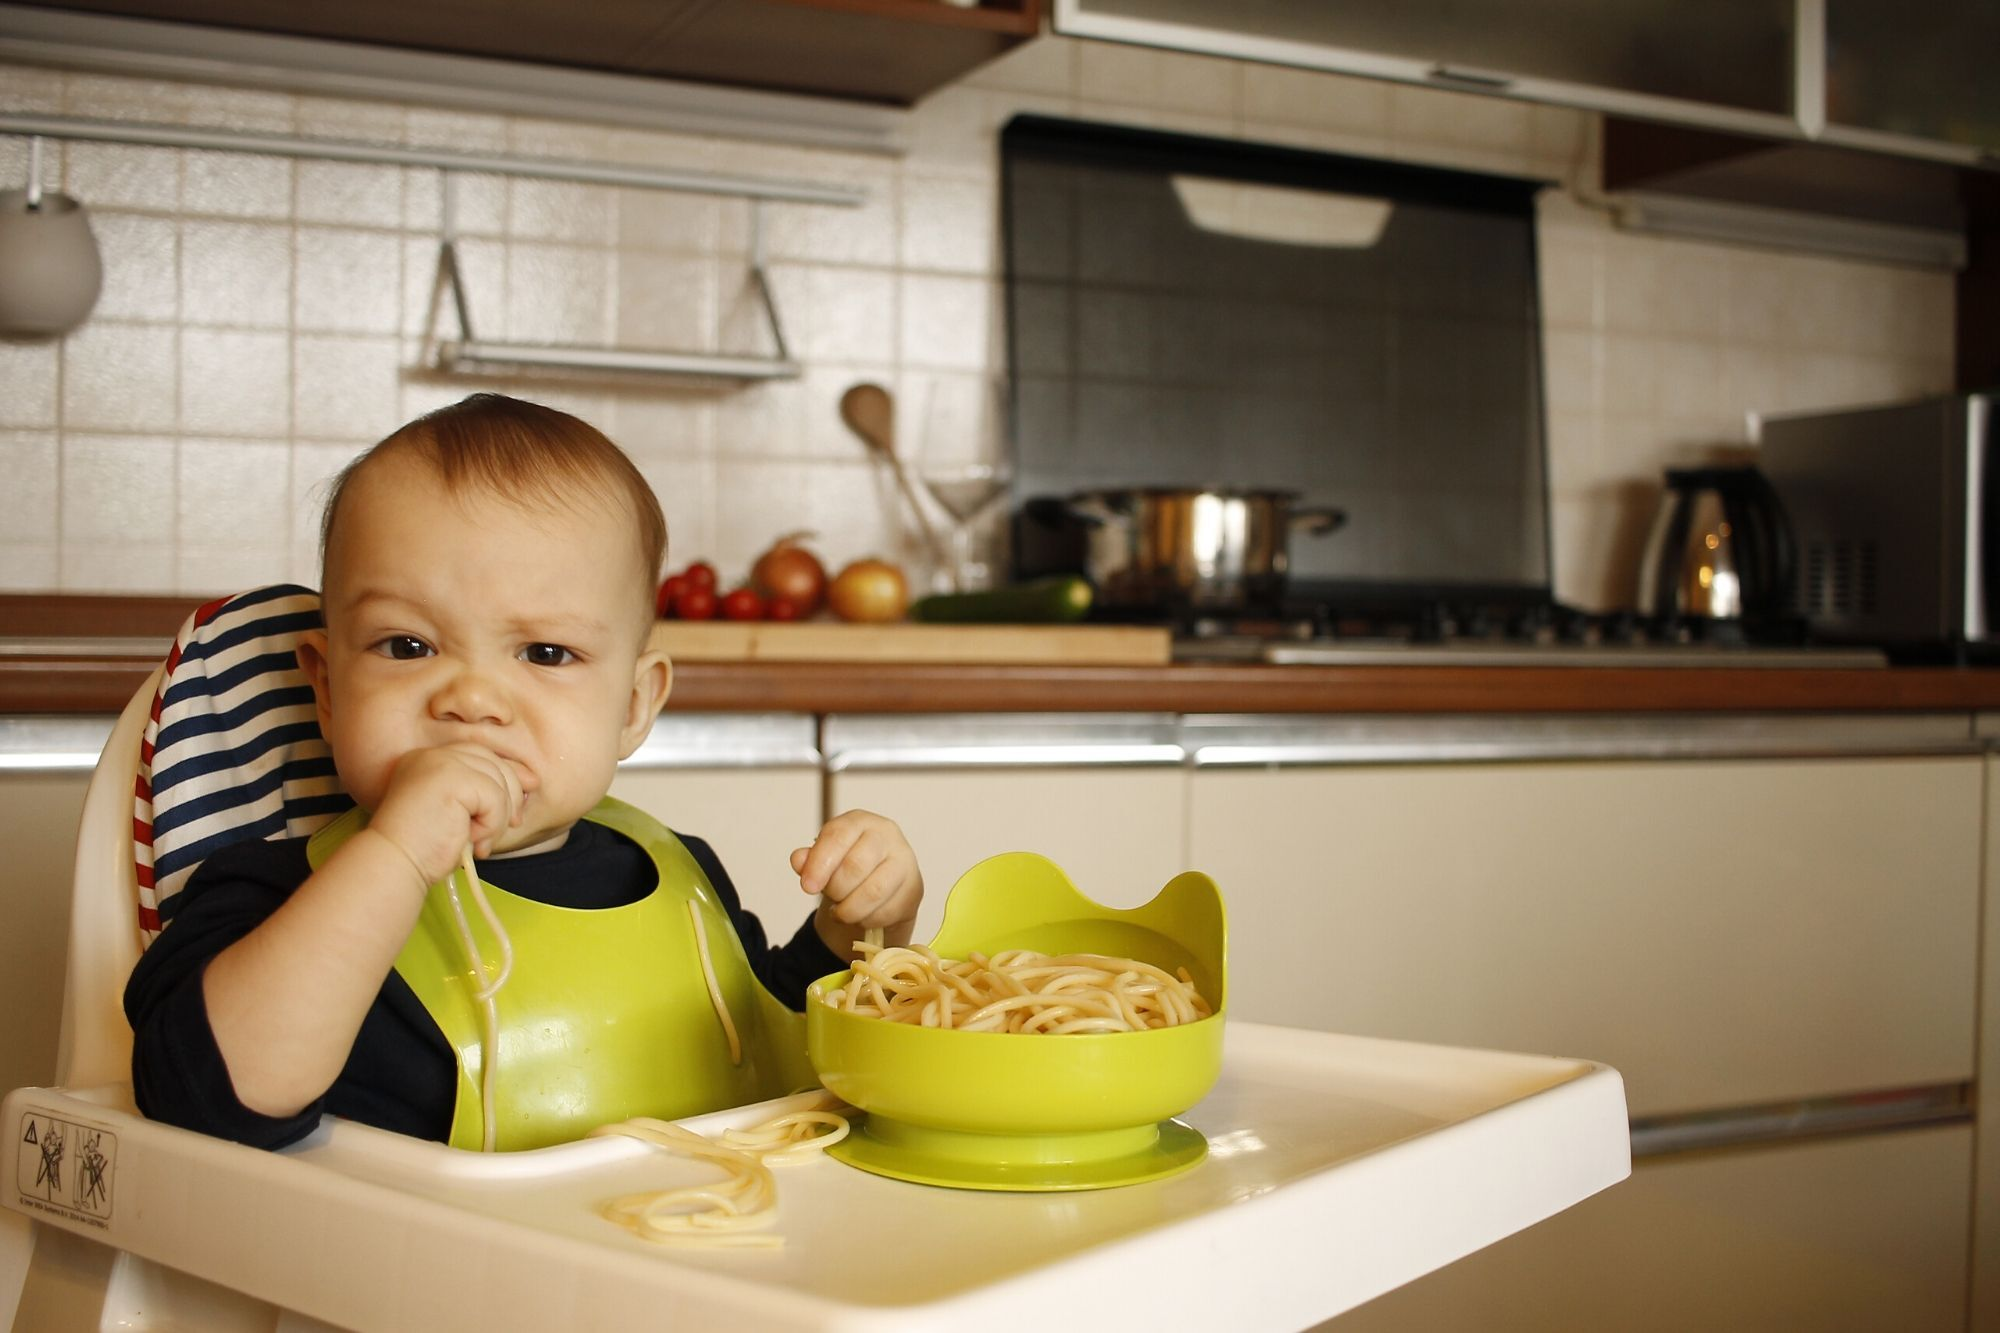 Toddler in a highchair eating pasta from a green bowl